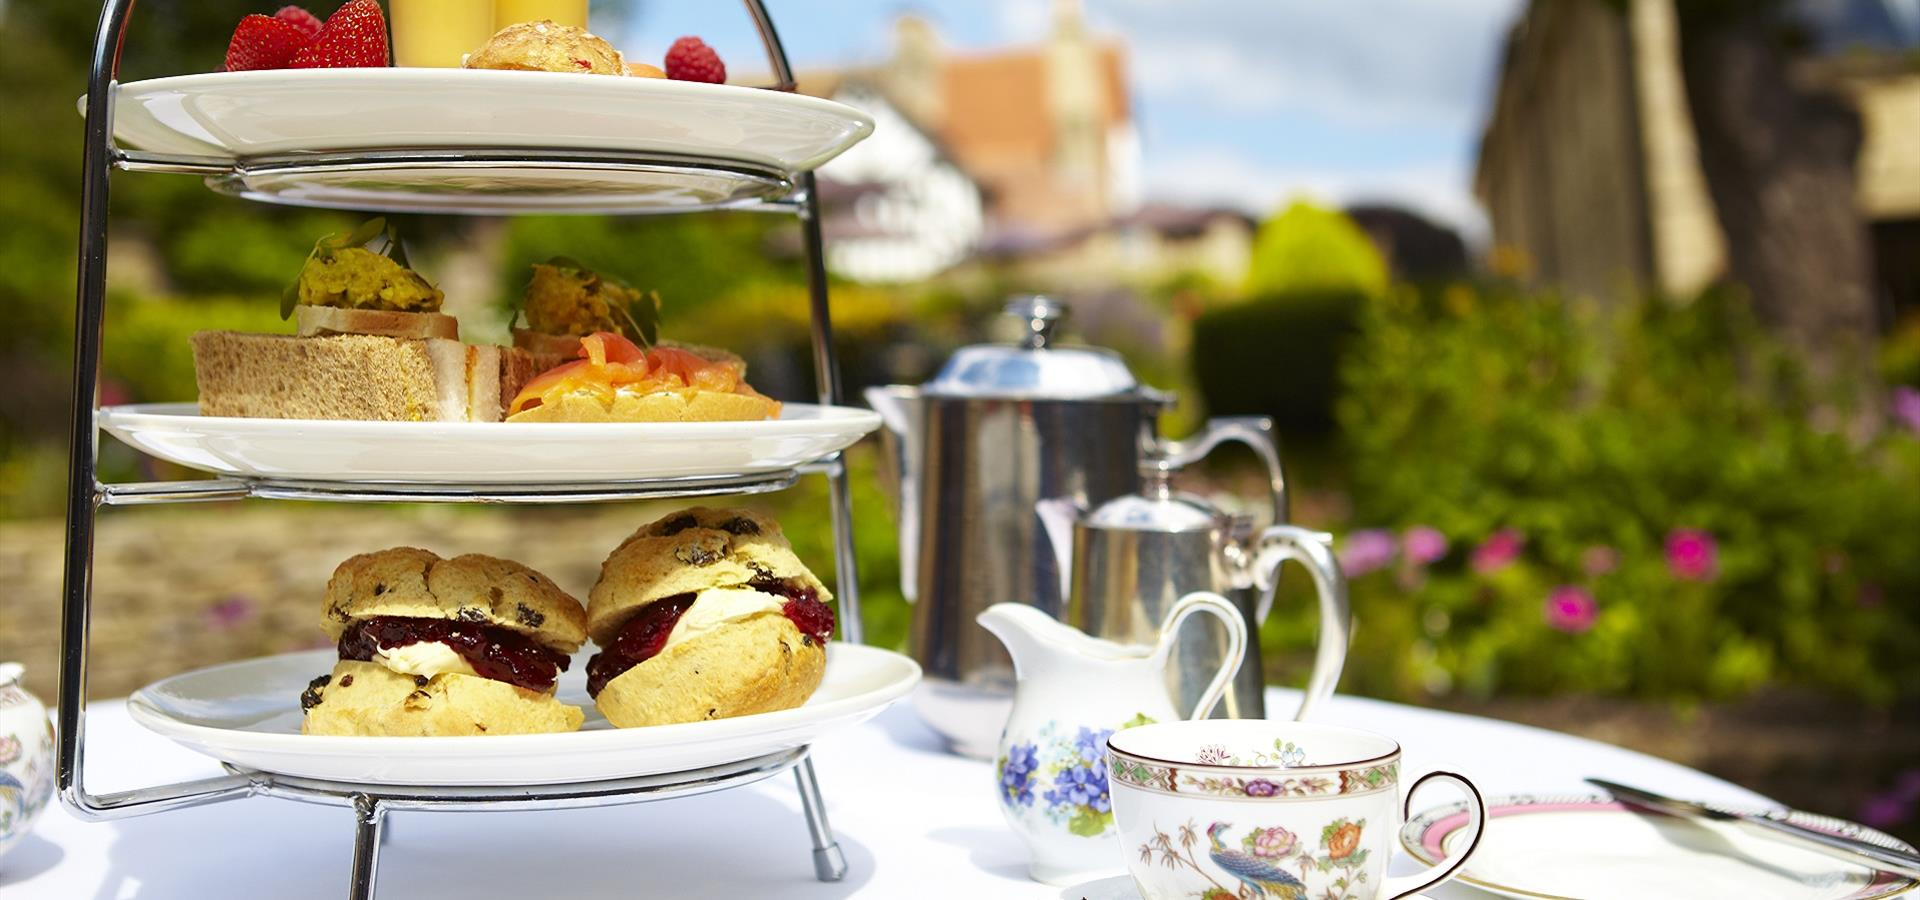 An image of Afternoon Tea in Filey by David Chalmers